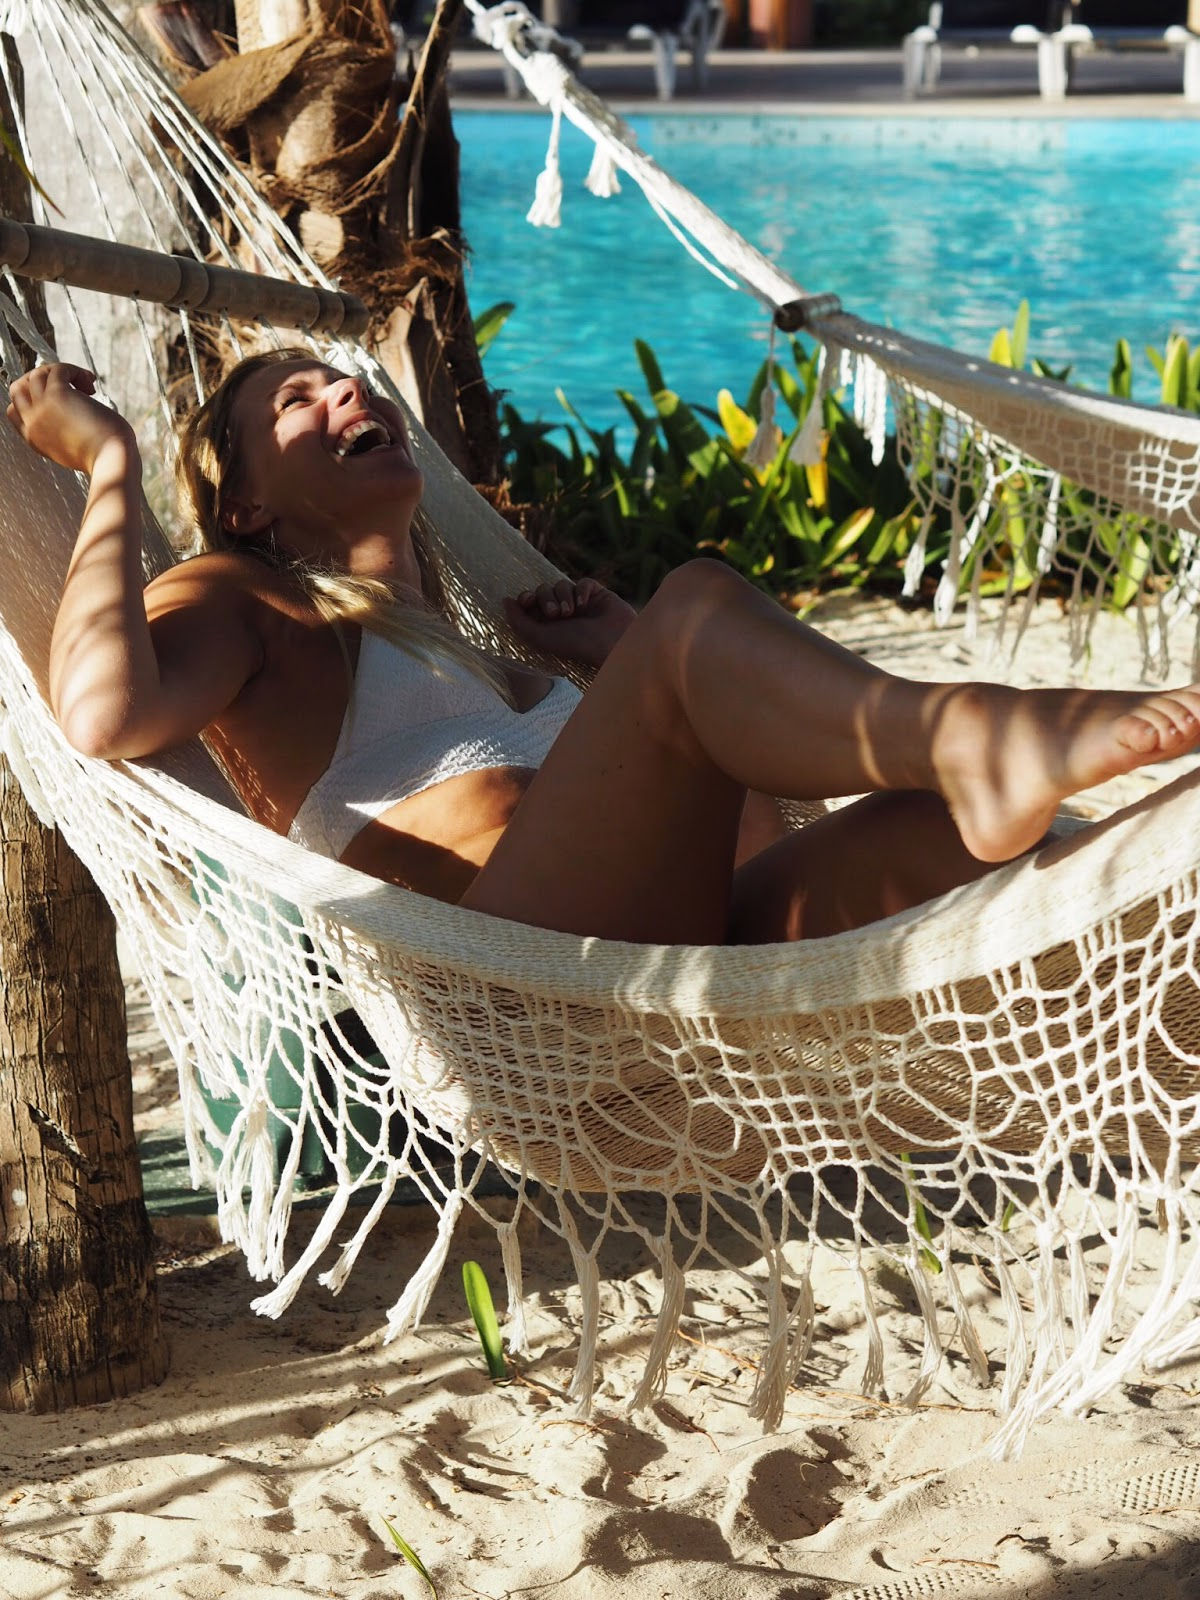 Rachel Emily White Bikini Laughing in Hammock by Pool